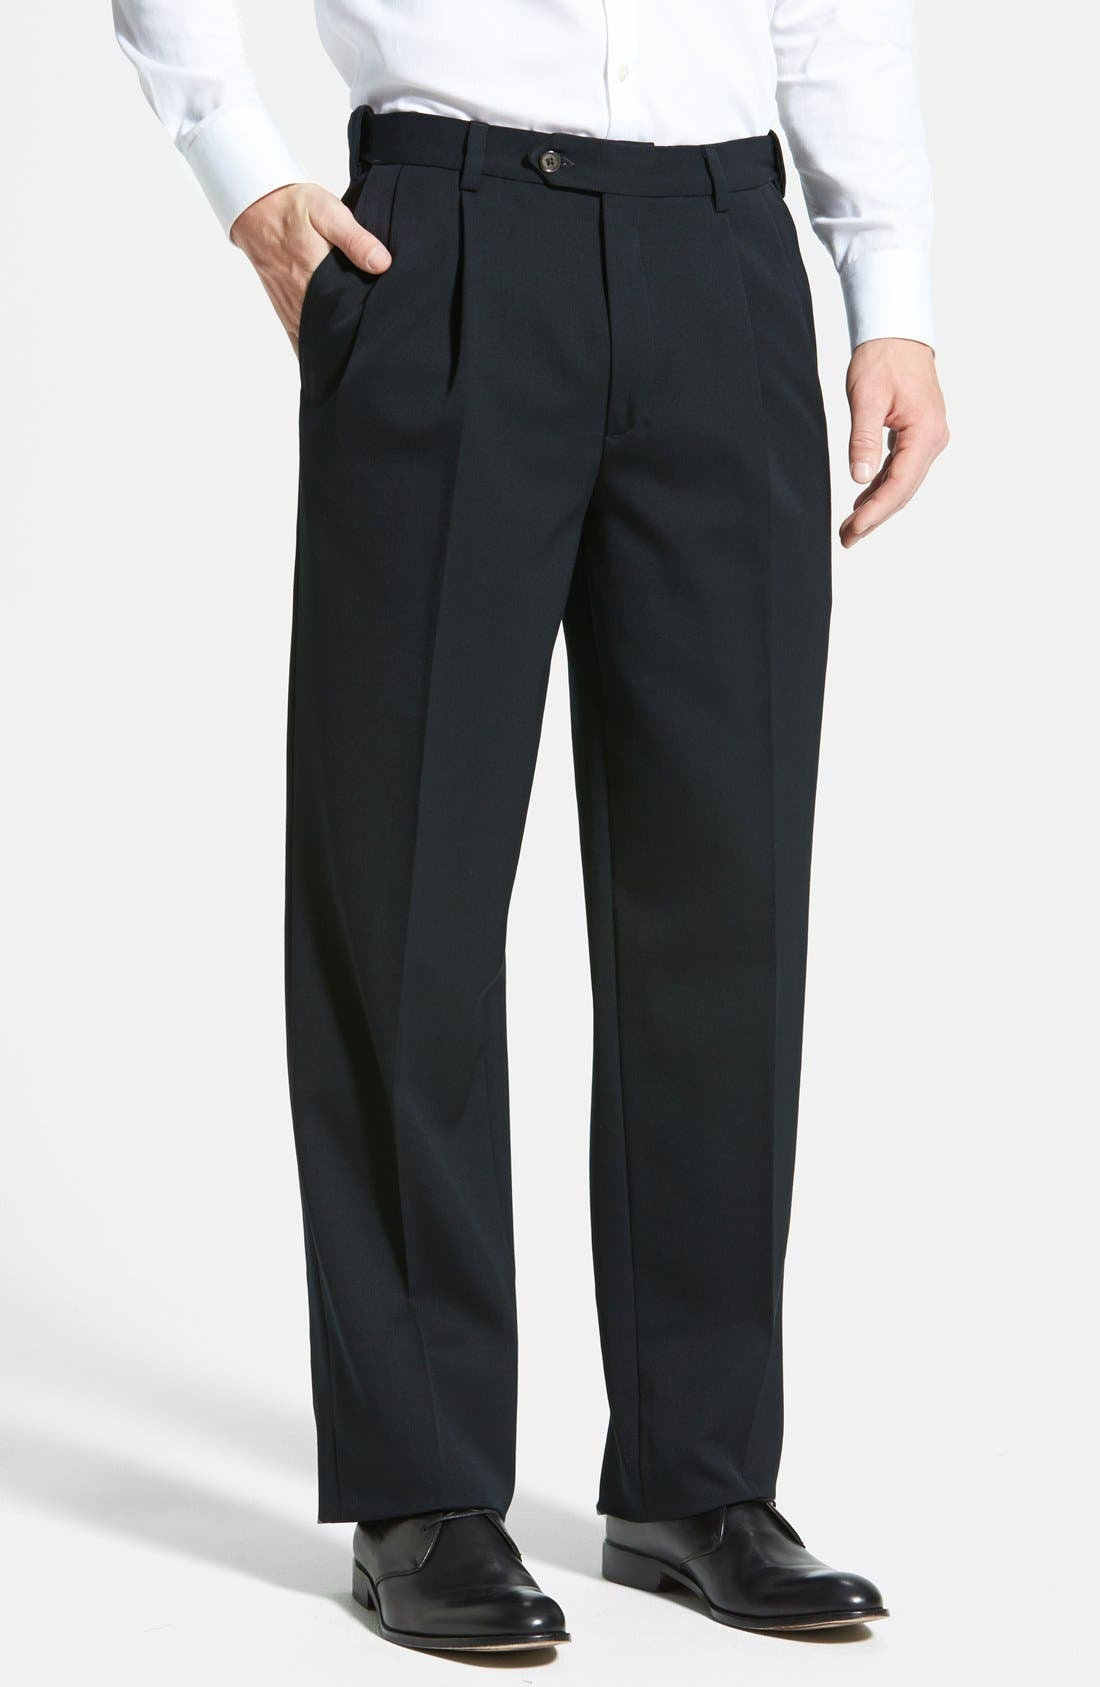 A classic pleated cut styles sharp cuffed trousers fashioned from finely textured wool gabardine and fitted with a self-sizer waistband to ensure a custom fit. Style Name: Berle Self Sizer Waist Pleated Classic Fit Wool Gabardine Dress Pants. Style Number: 461449. Available in stores.